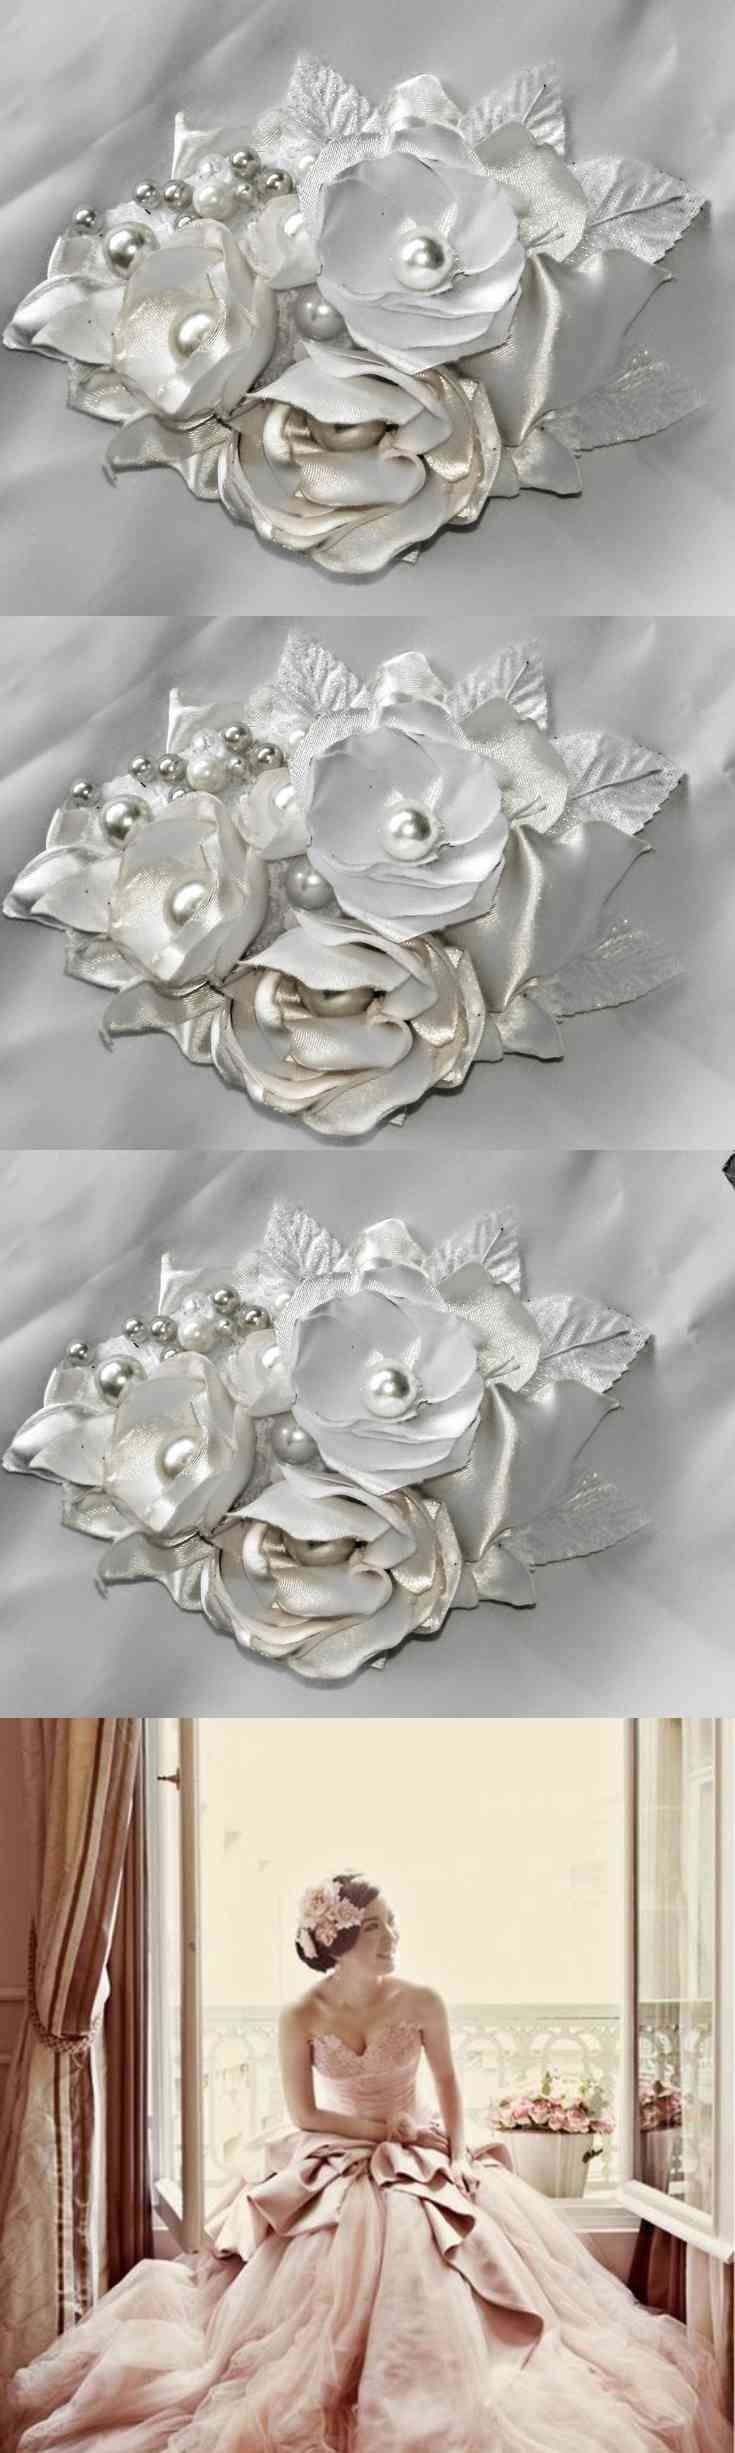 Wedding Hairpiece, hair accessory, Bridal Hair, Brides Hair Clip, Wedding Hair, Flower Hair Comb, Hair Clip, Bridal Hair Clips, Wedding Hair, Wedding Hair Clip Flowers all hand made each petal is cut into a leaf and molded into a flowers using  Silk Satin fabric with real some real Pearls and Embellishment Wedding Hair Piece for a Bride, Bridesmaids the size 6 in length (...) (via pushapin.com)